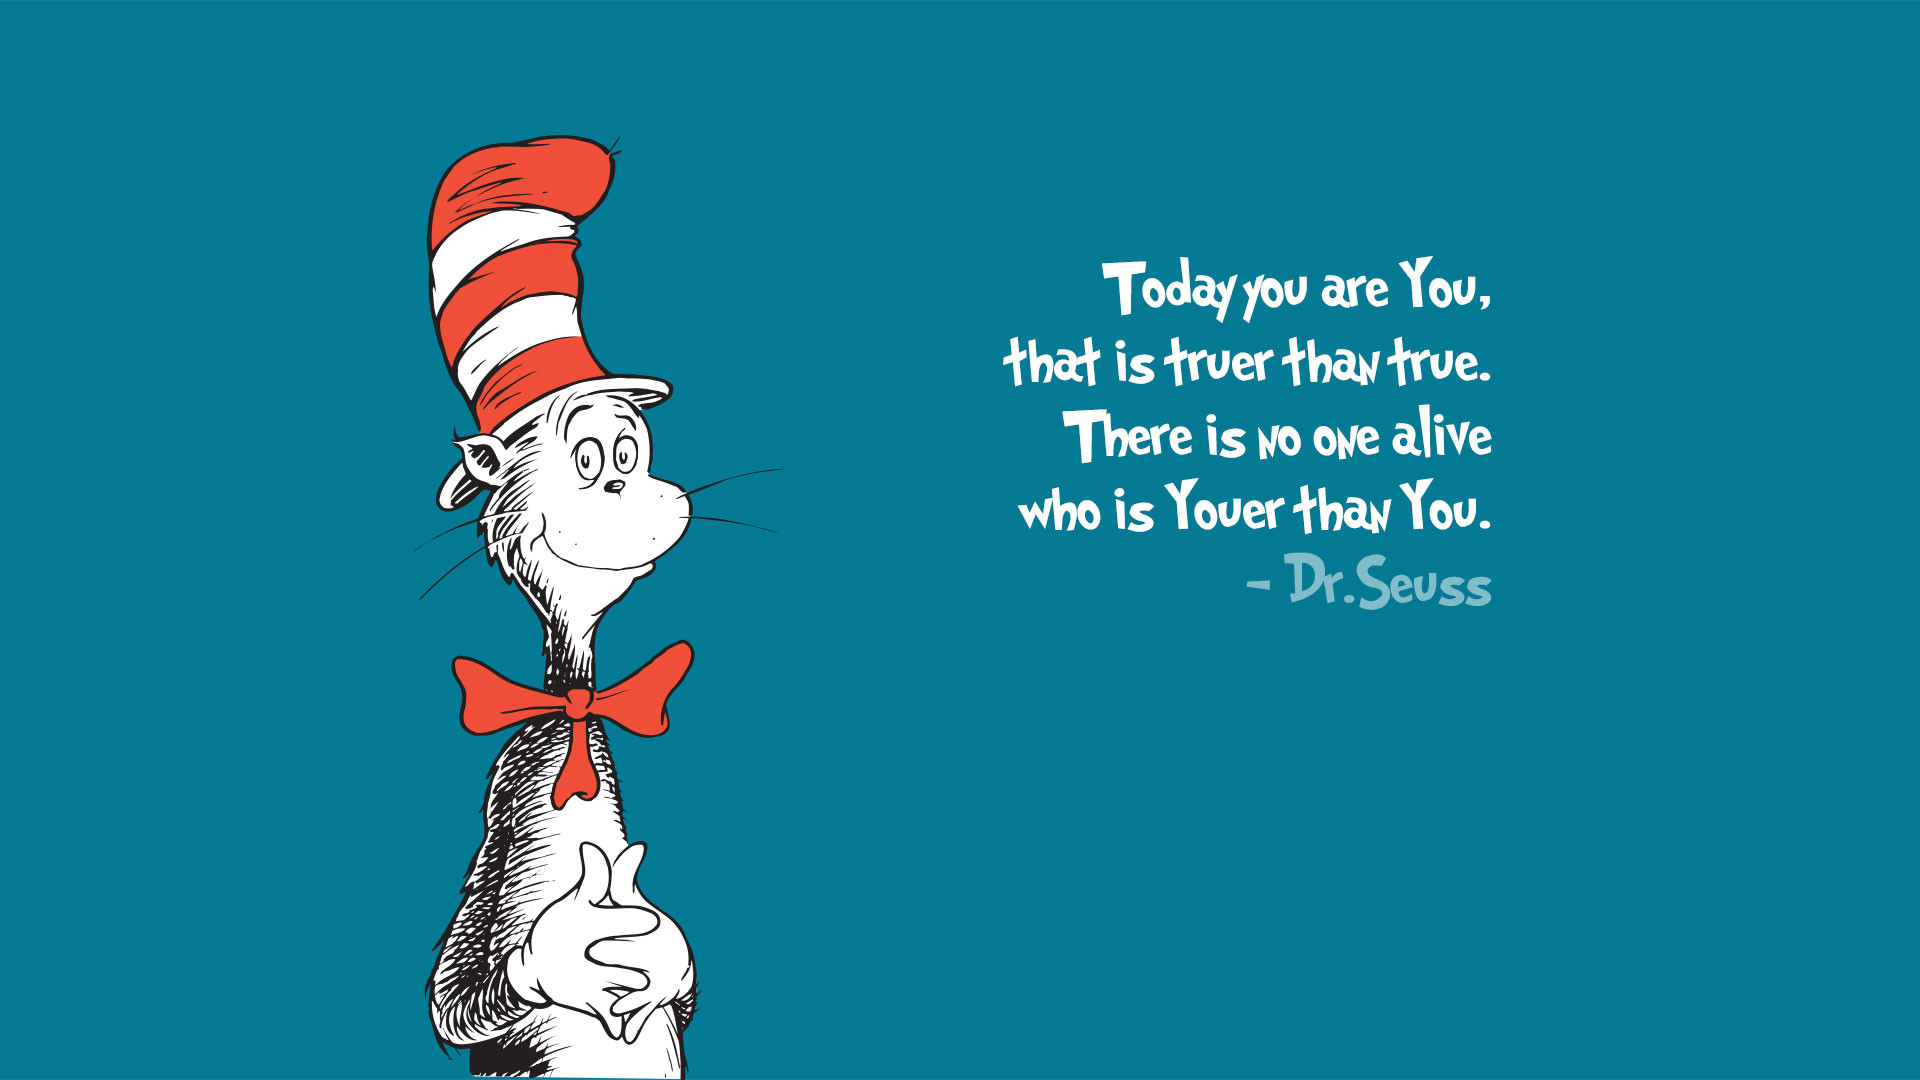 1920x1080 Dr Seuss Quotes Love Wallpaper Images & Pictures Becuo #7944